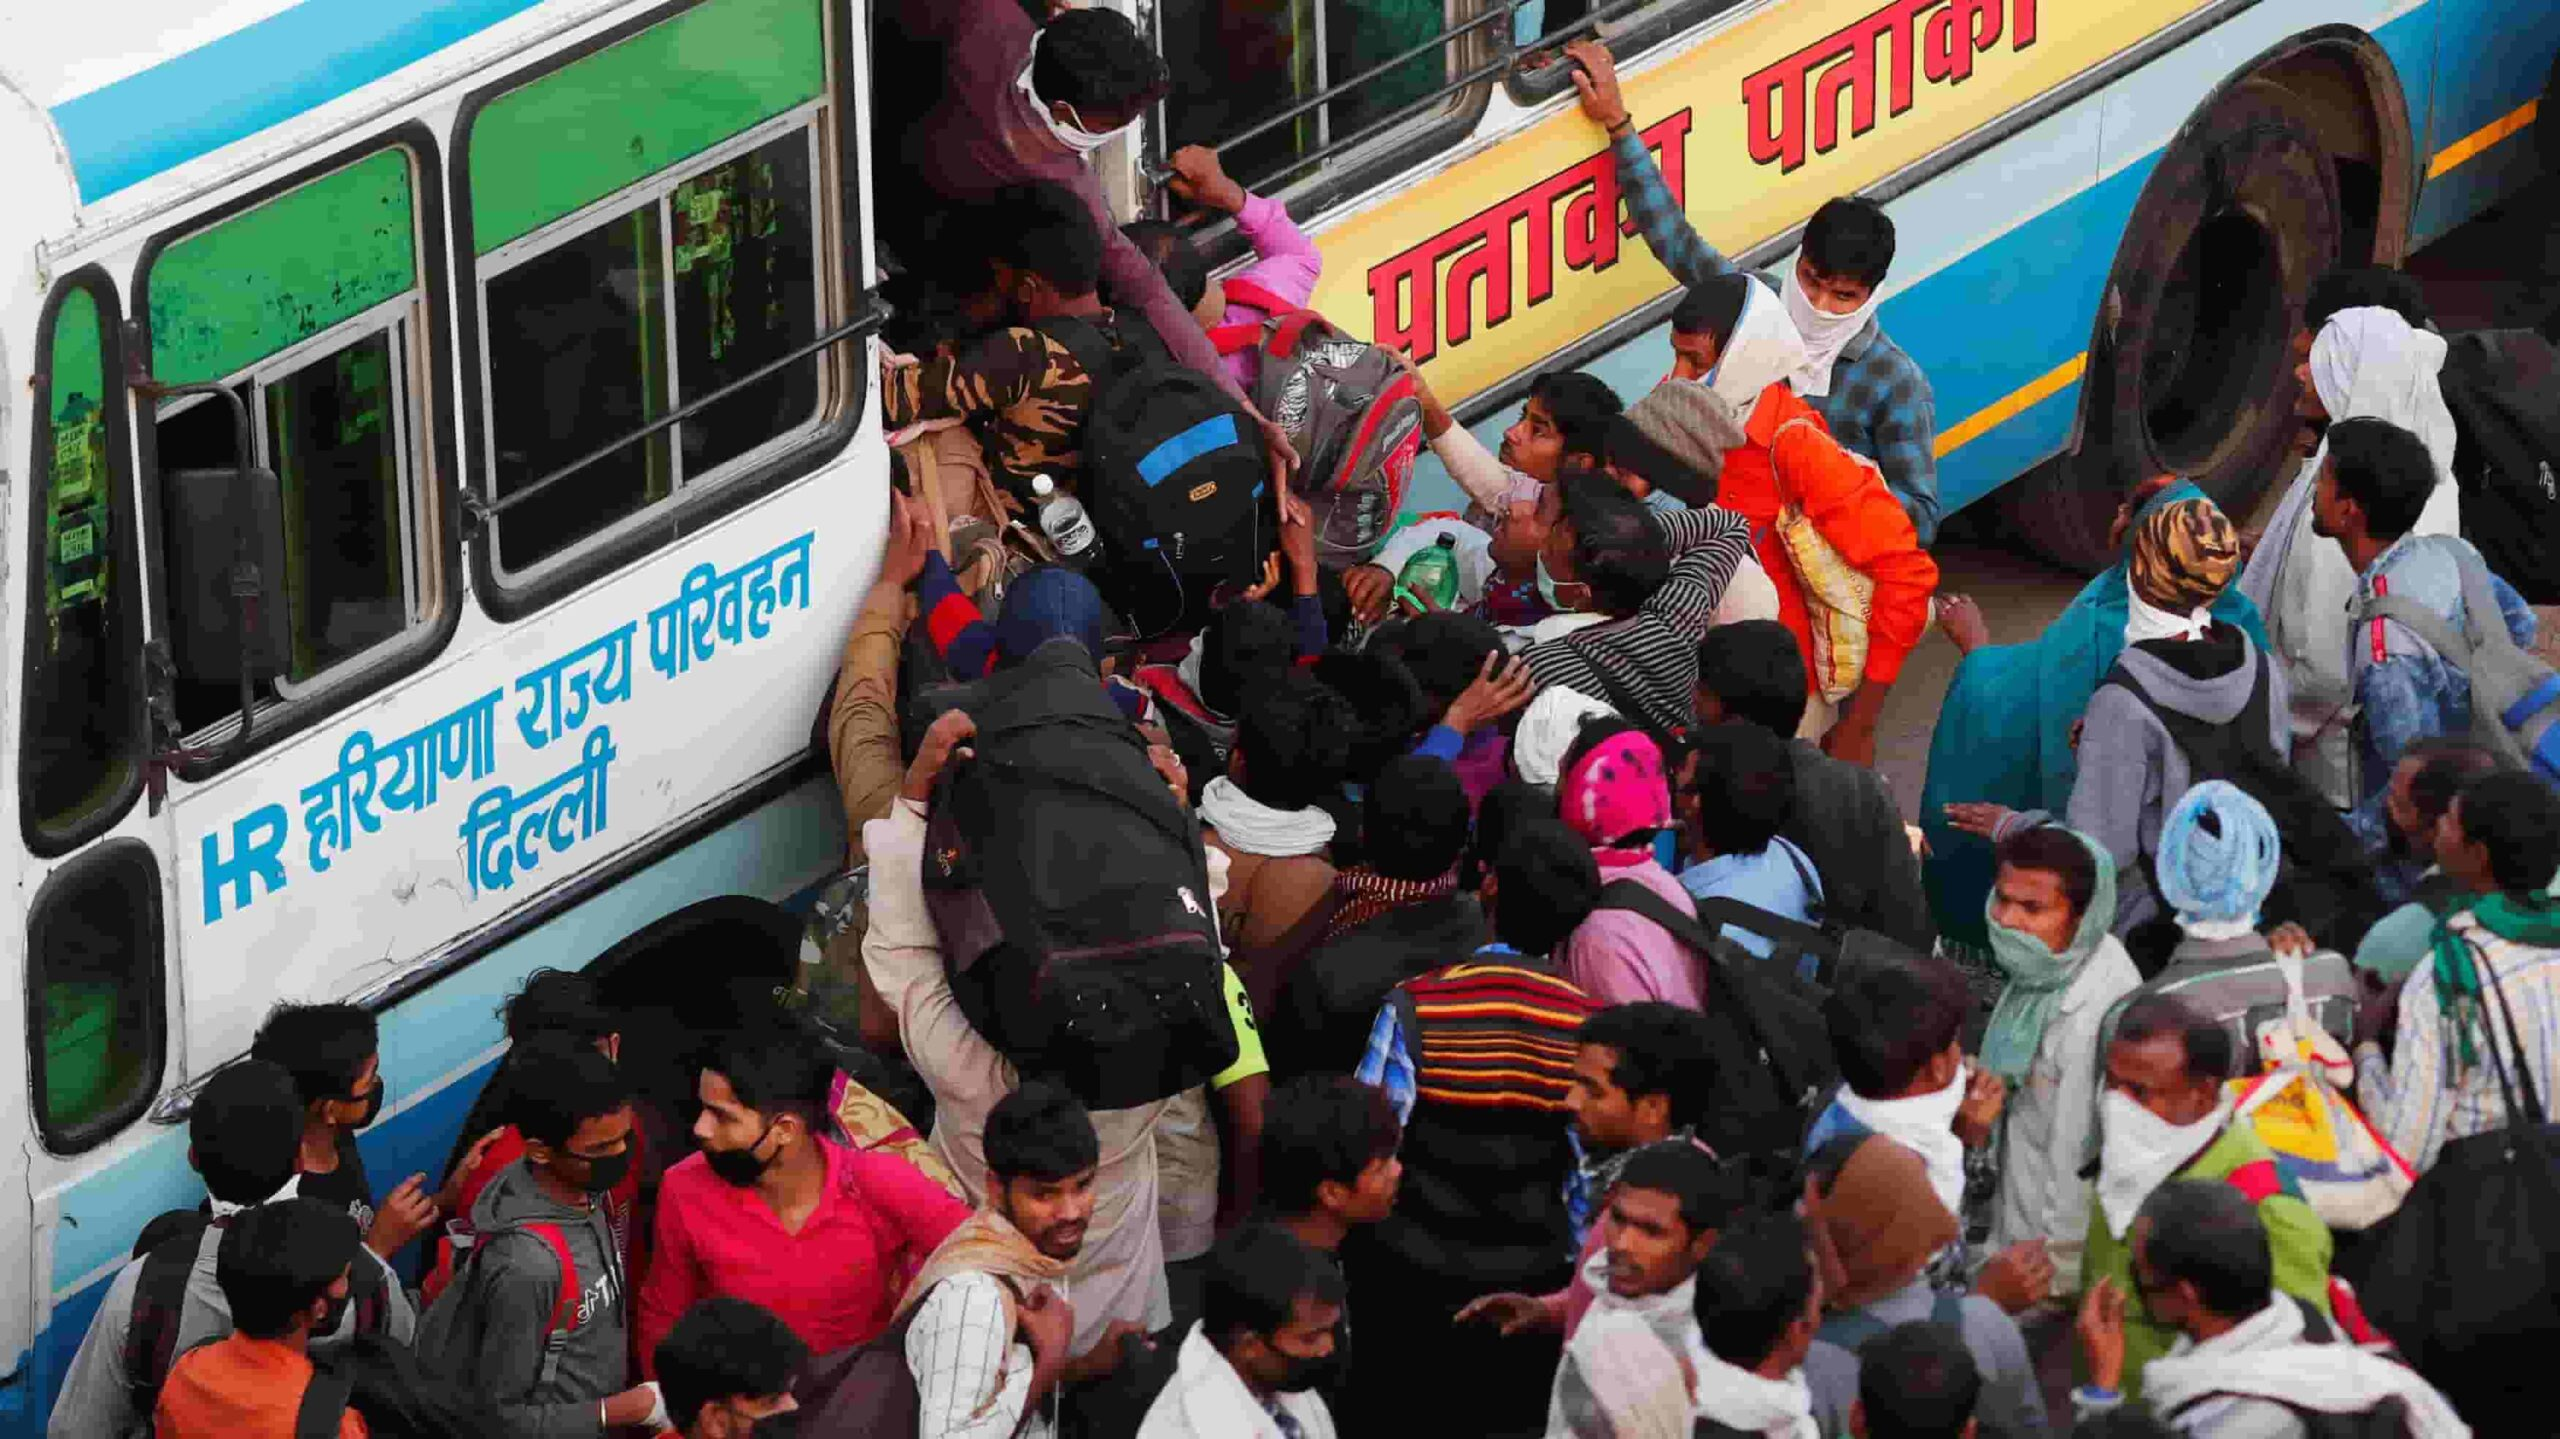 boarding bus in india and not following social distance